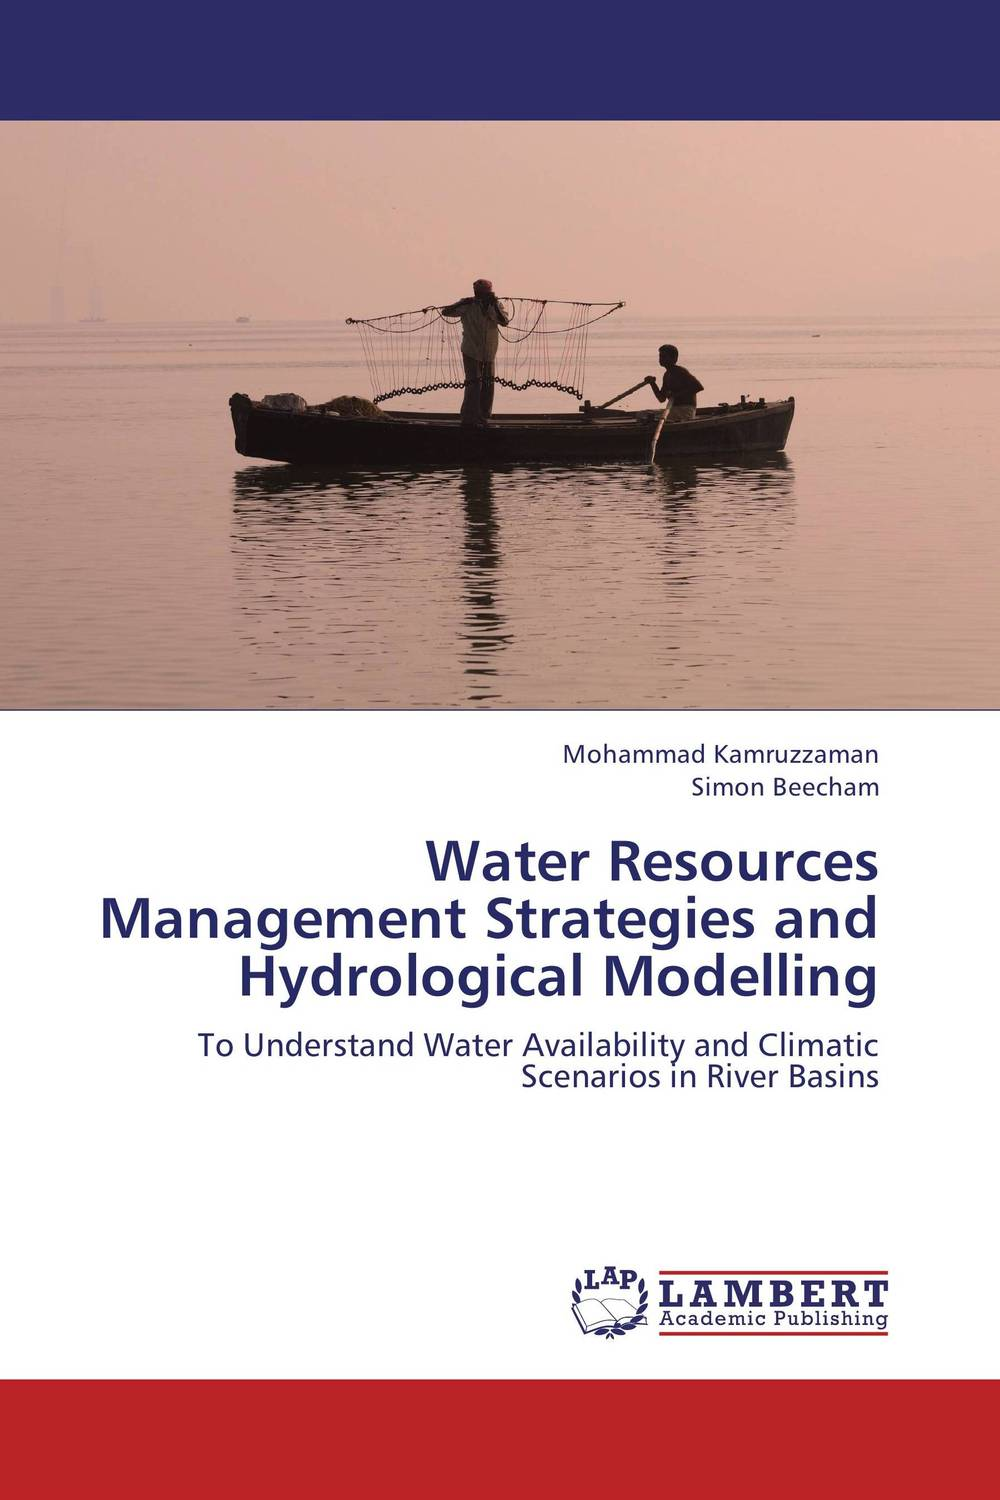 Water Resources Management Strategies and Hydrological Modelling 33 element 331430c